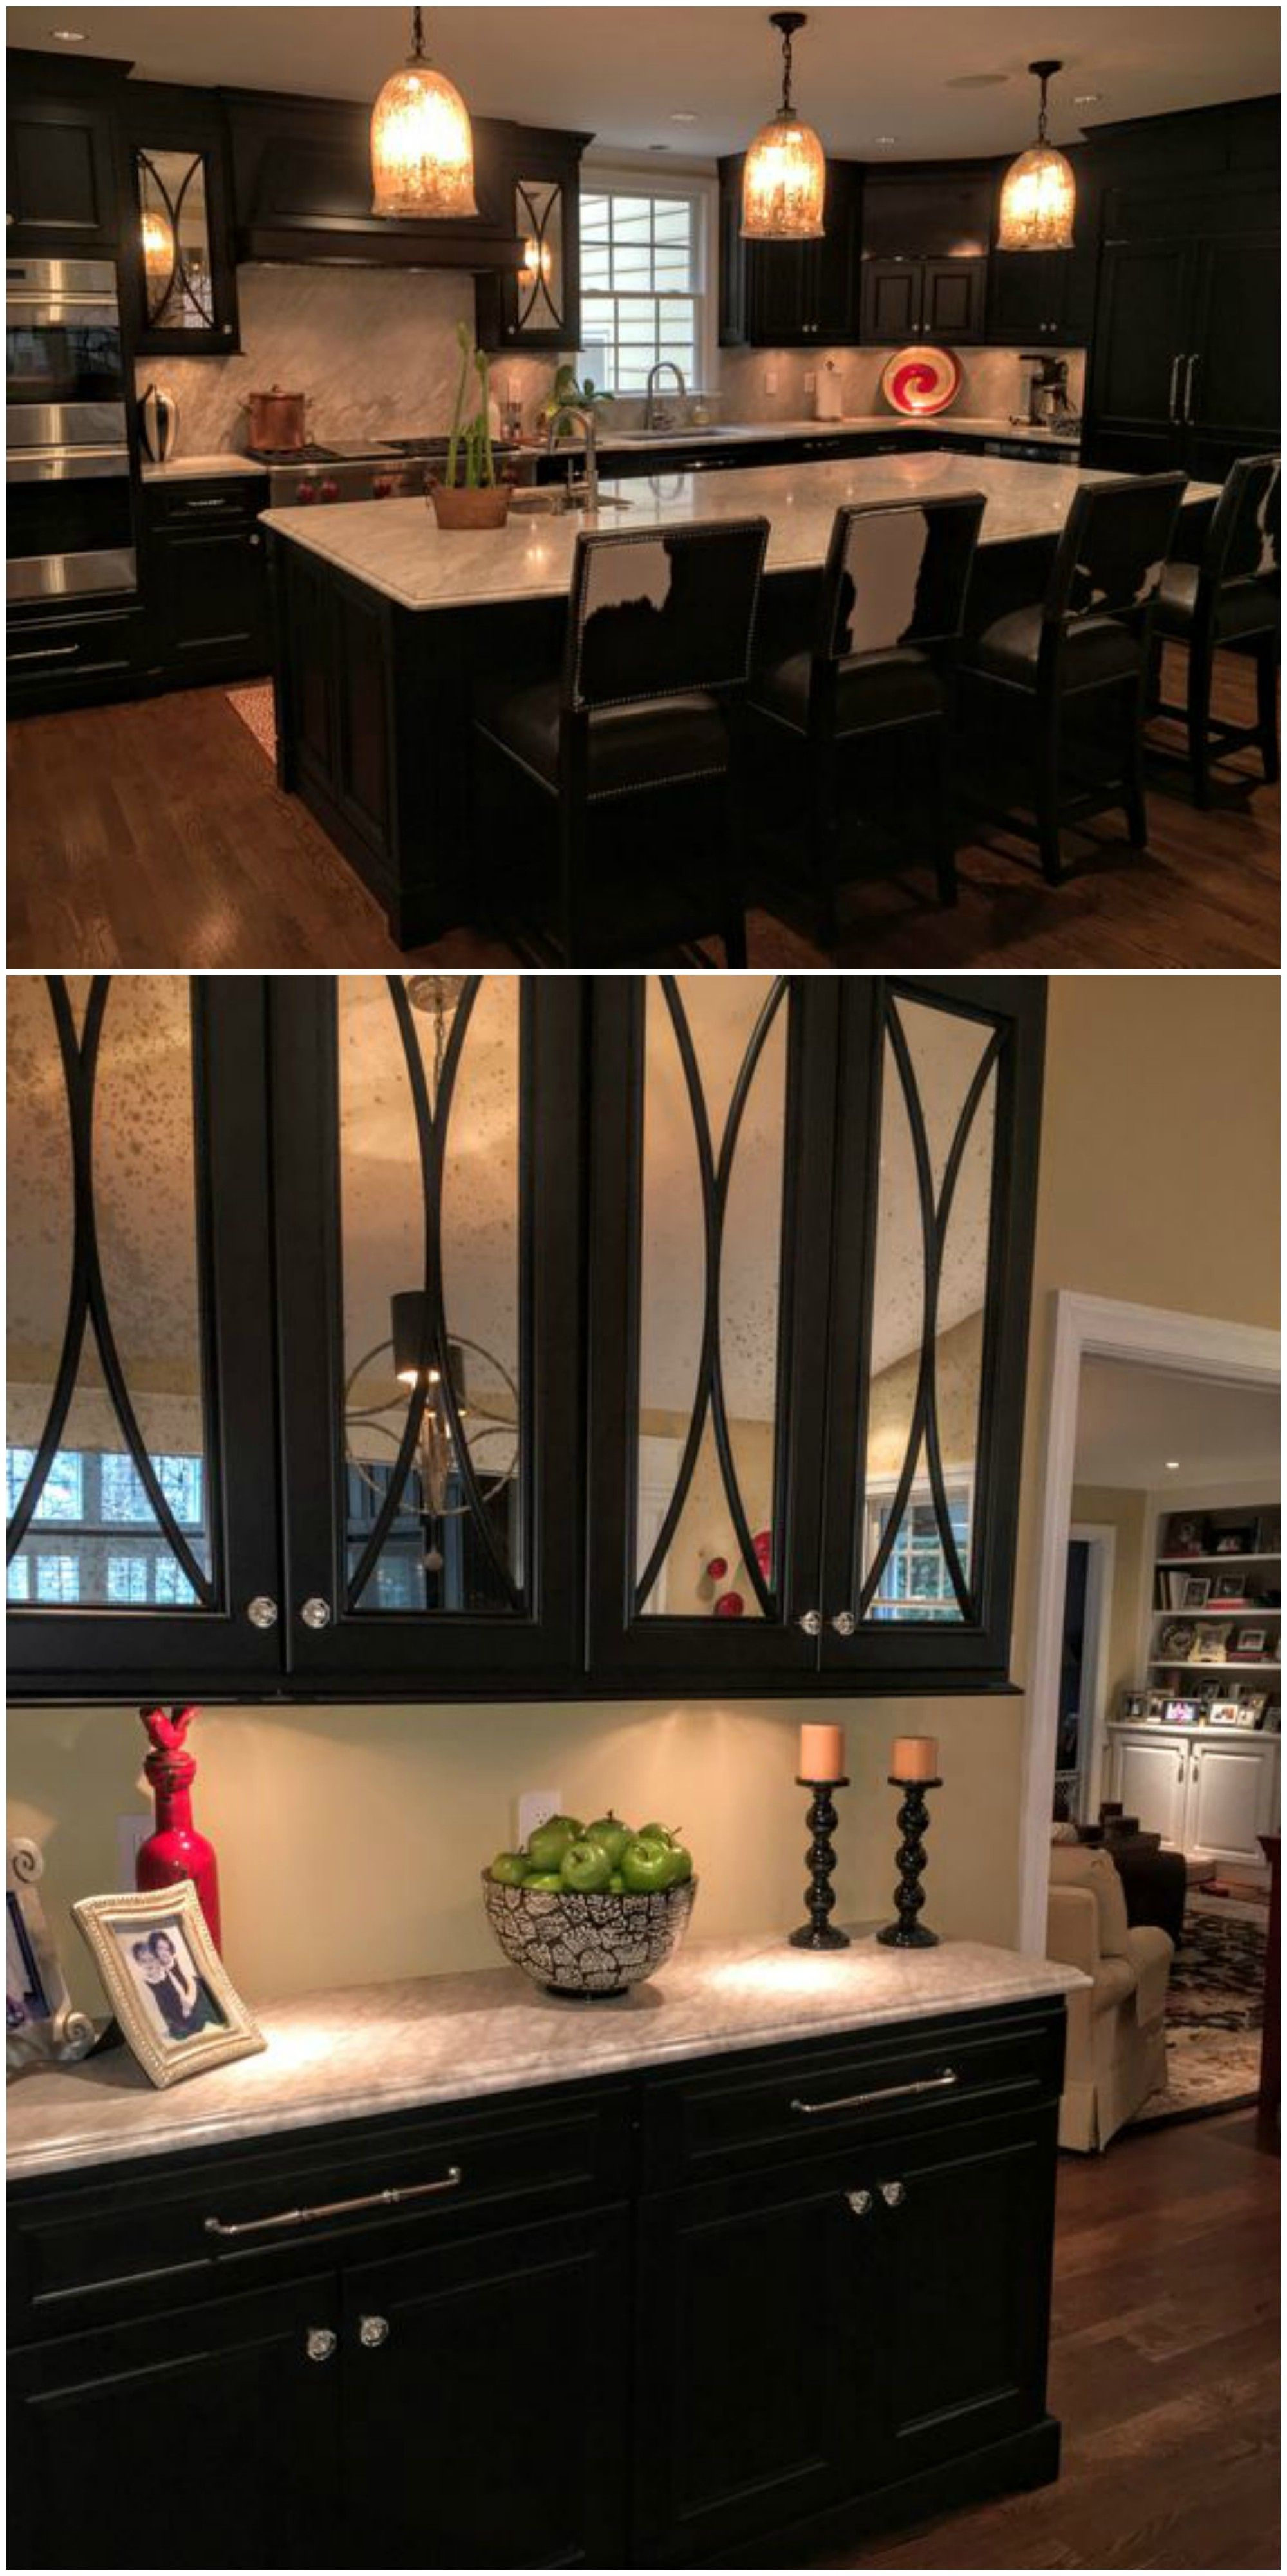 Dark Painted Kitchen Mercury Glass Fronted Doors with Arched